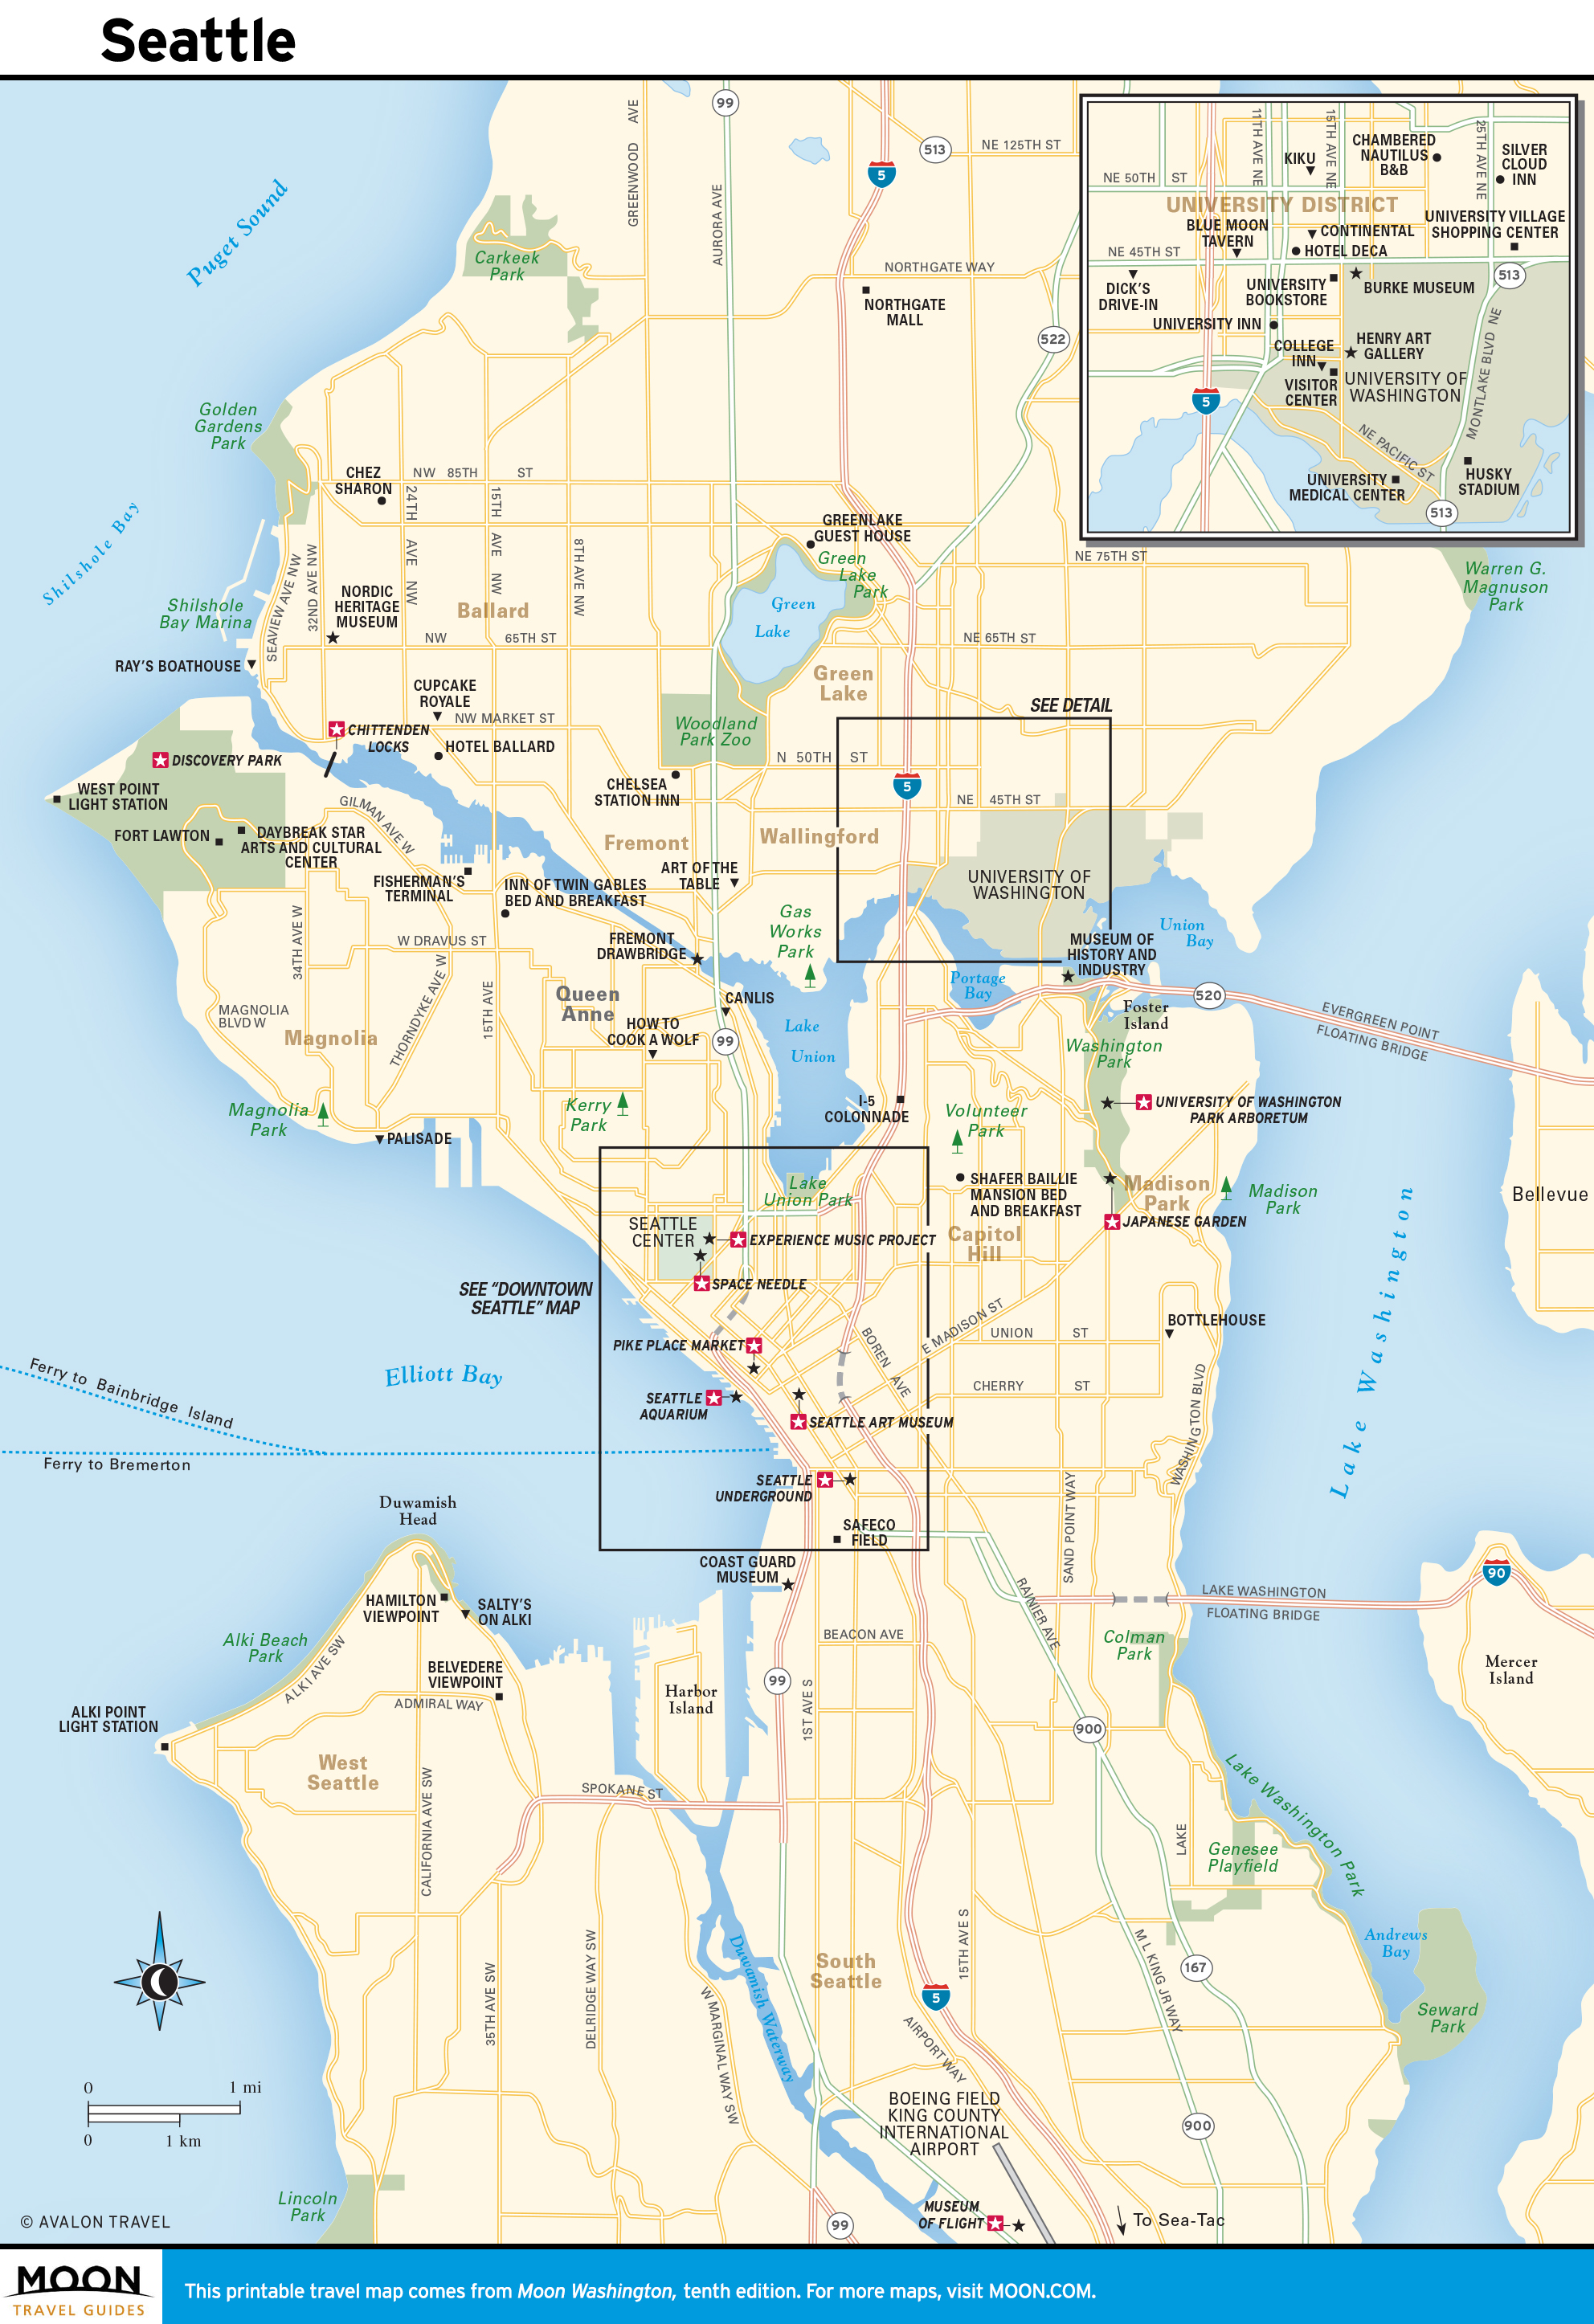 This is a photo of Printable Map of Seattle within children's zoo